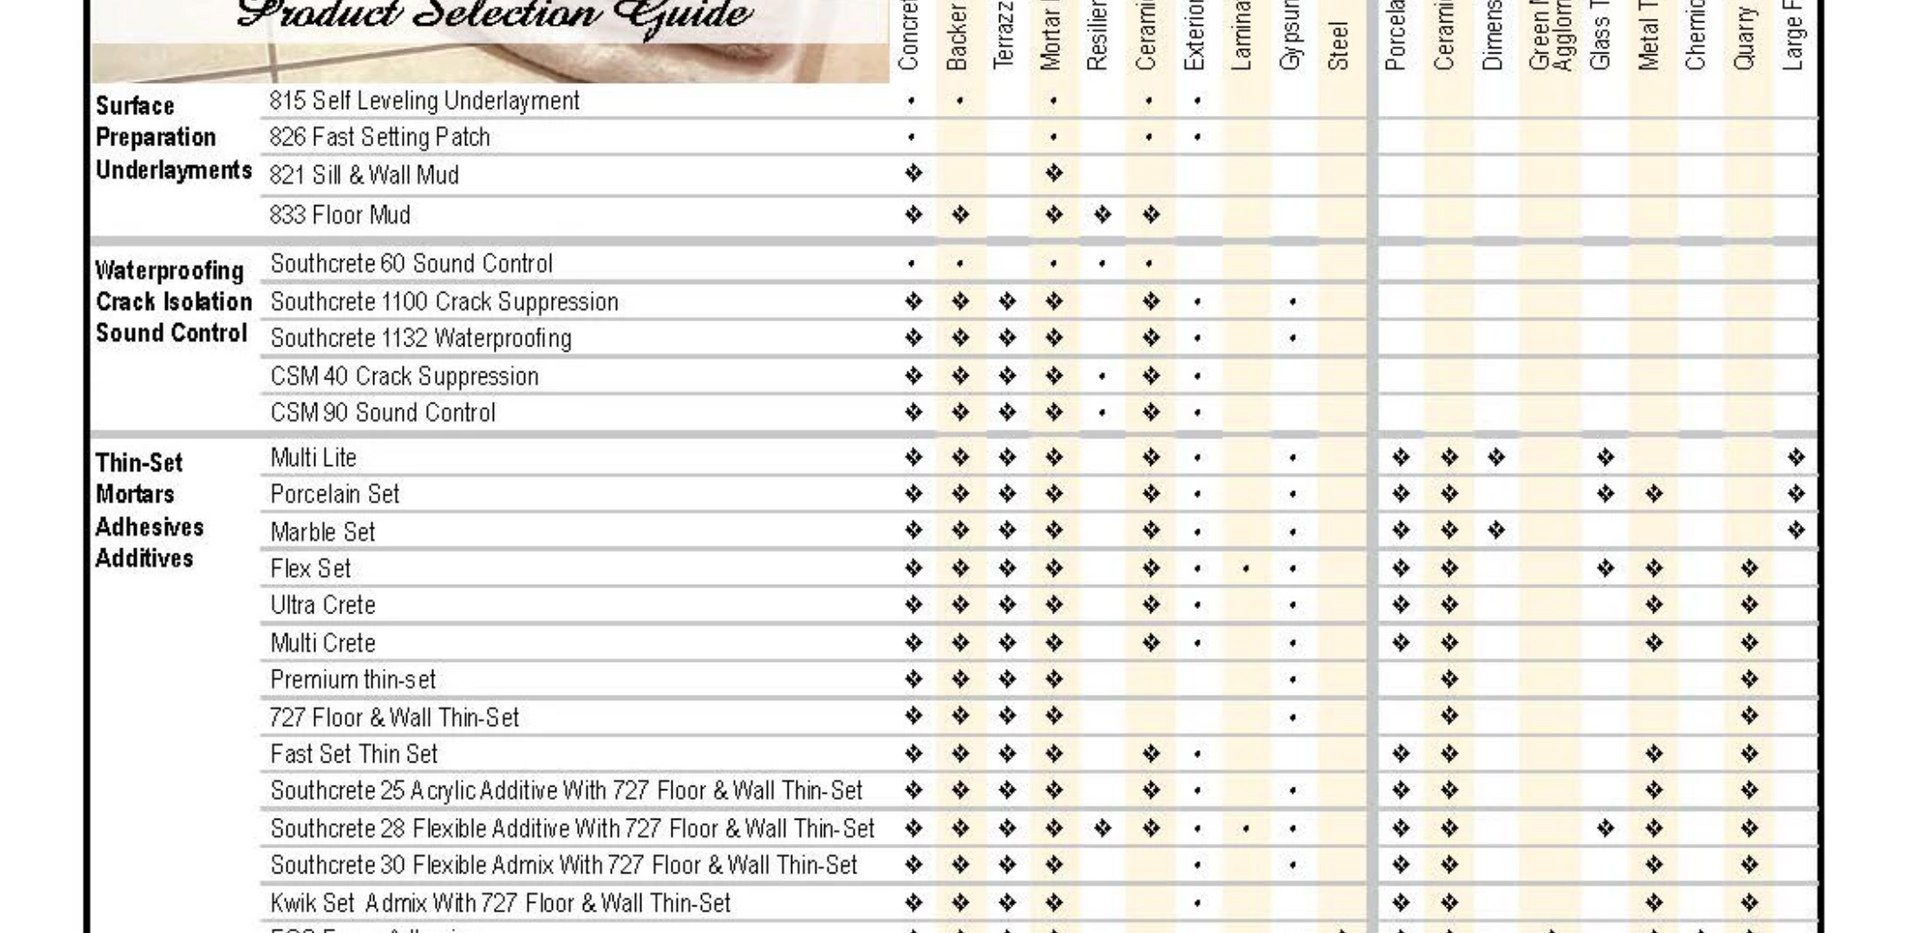 Open SGM Product Selection Chart